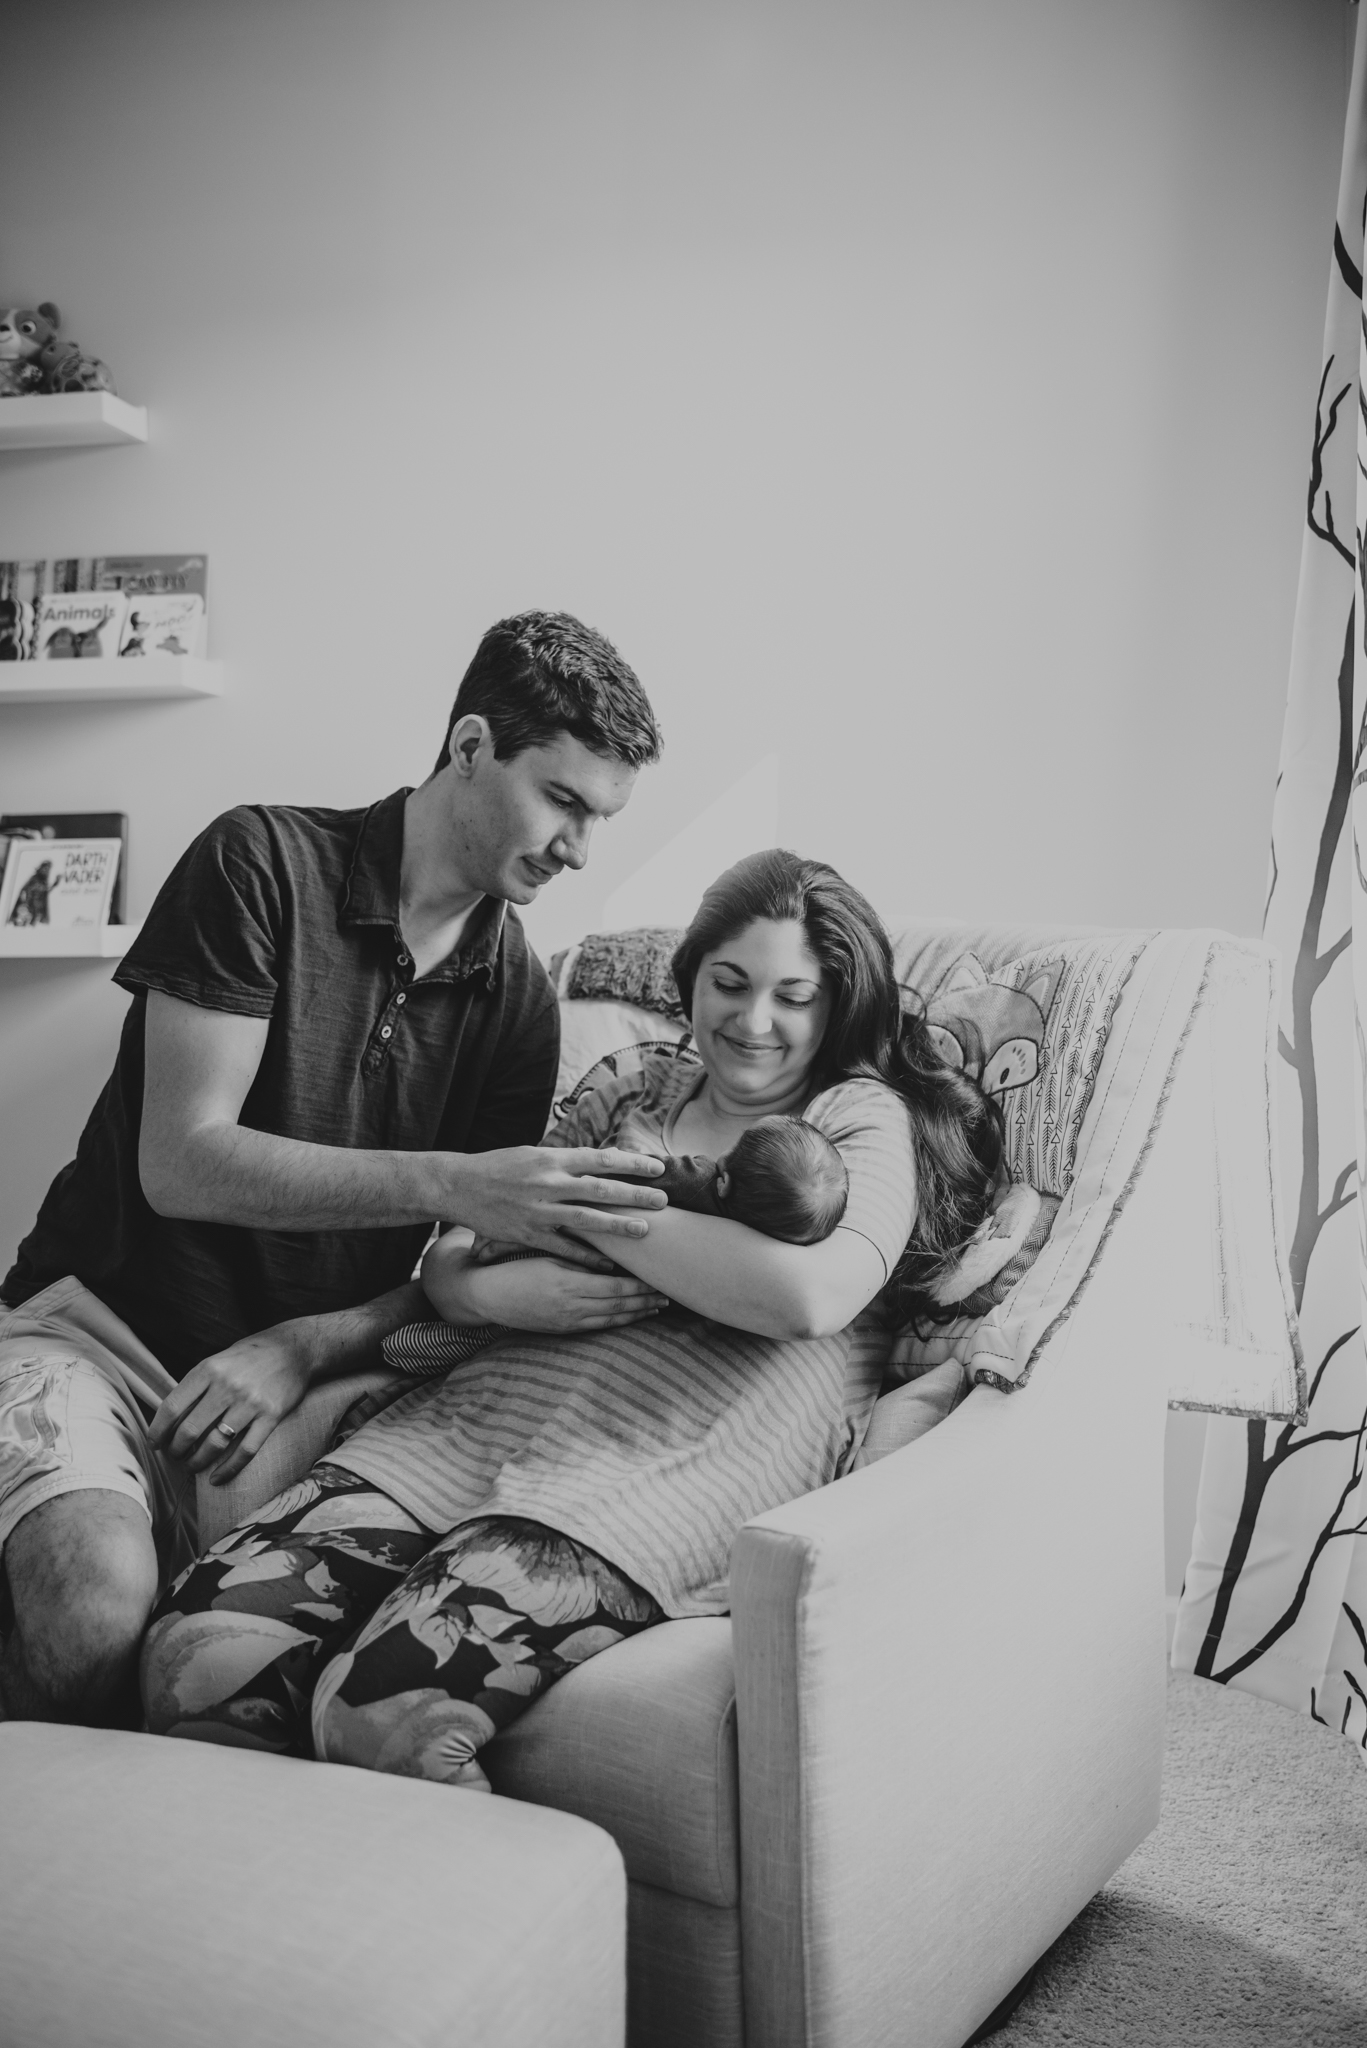 The new parents sit in the chair in the nursery while holding their newborn in Wake Forest, a black and white image by Rose Trail Images.